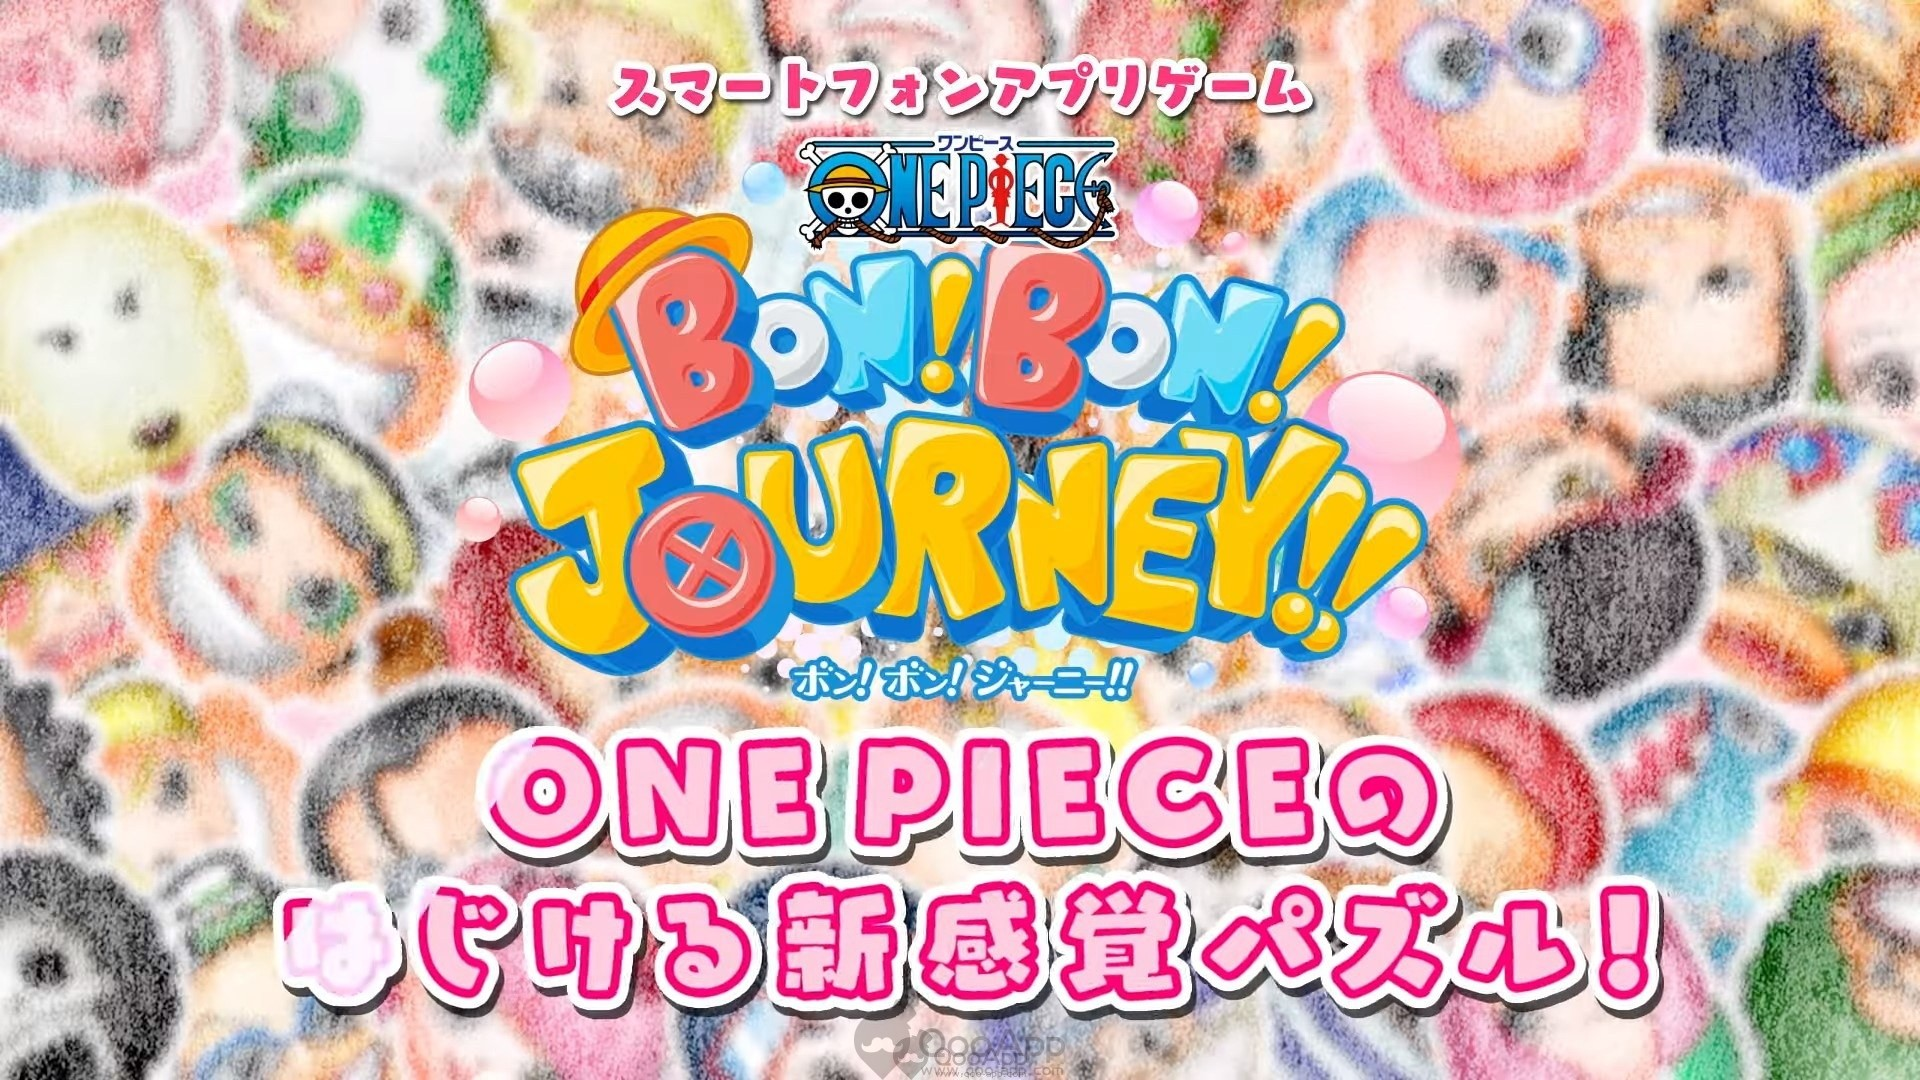 """ONE PIECE Bon! Bon! Journey!!"" Global Ver. Now Available for Download!"